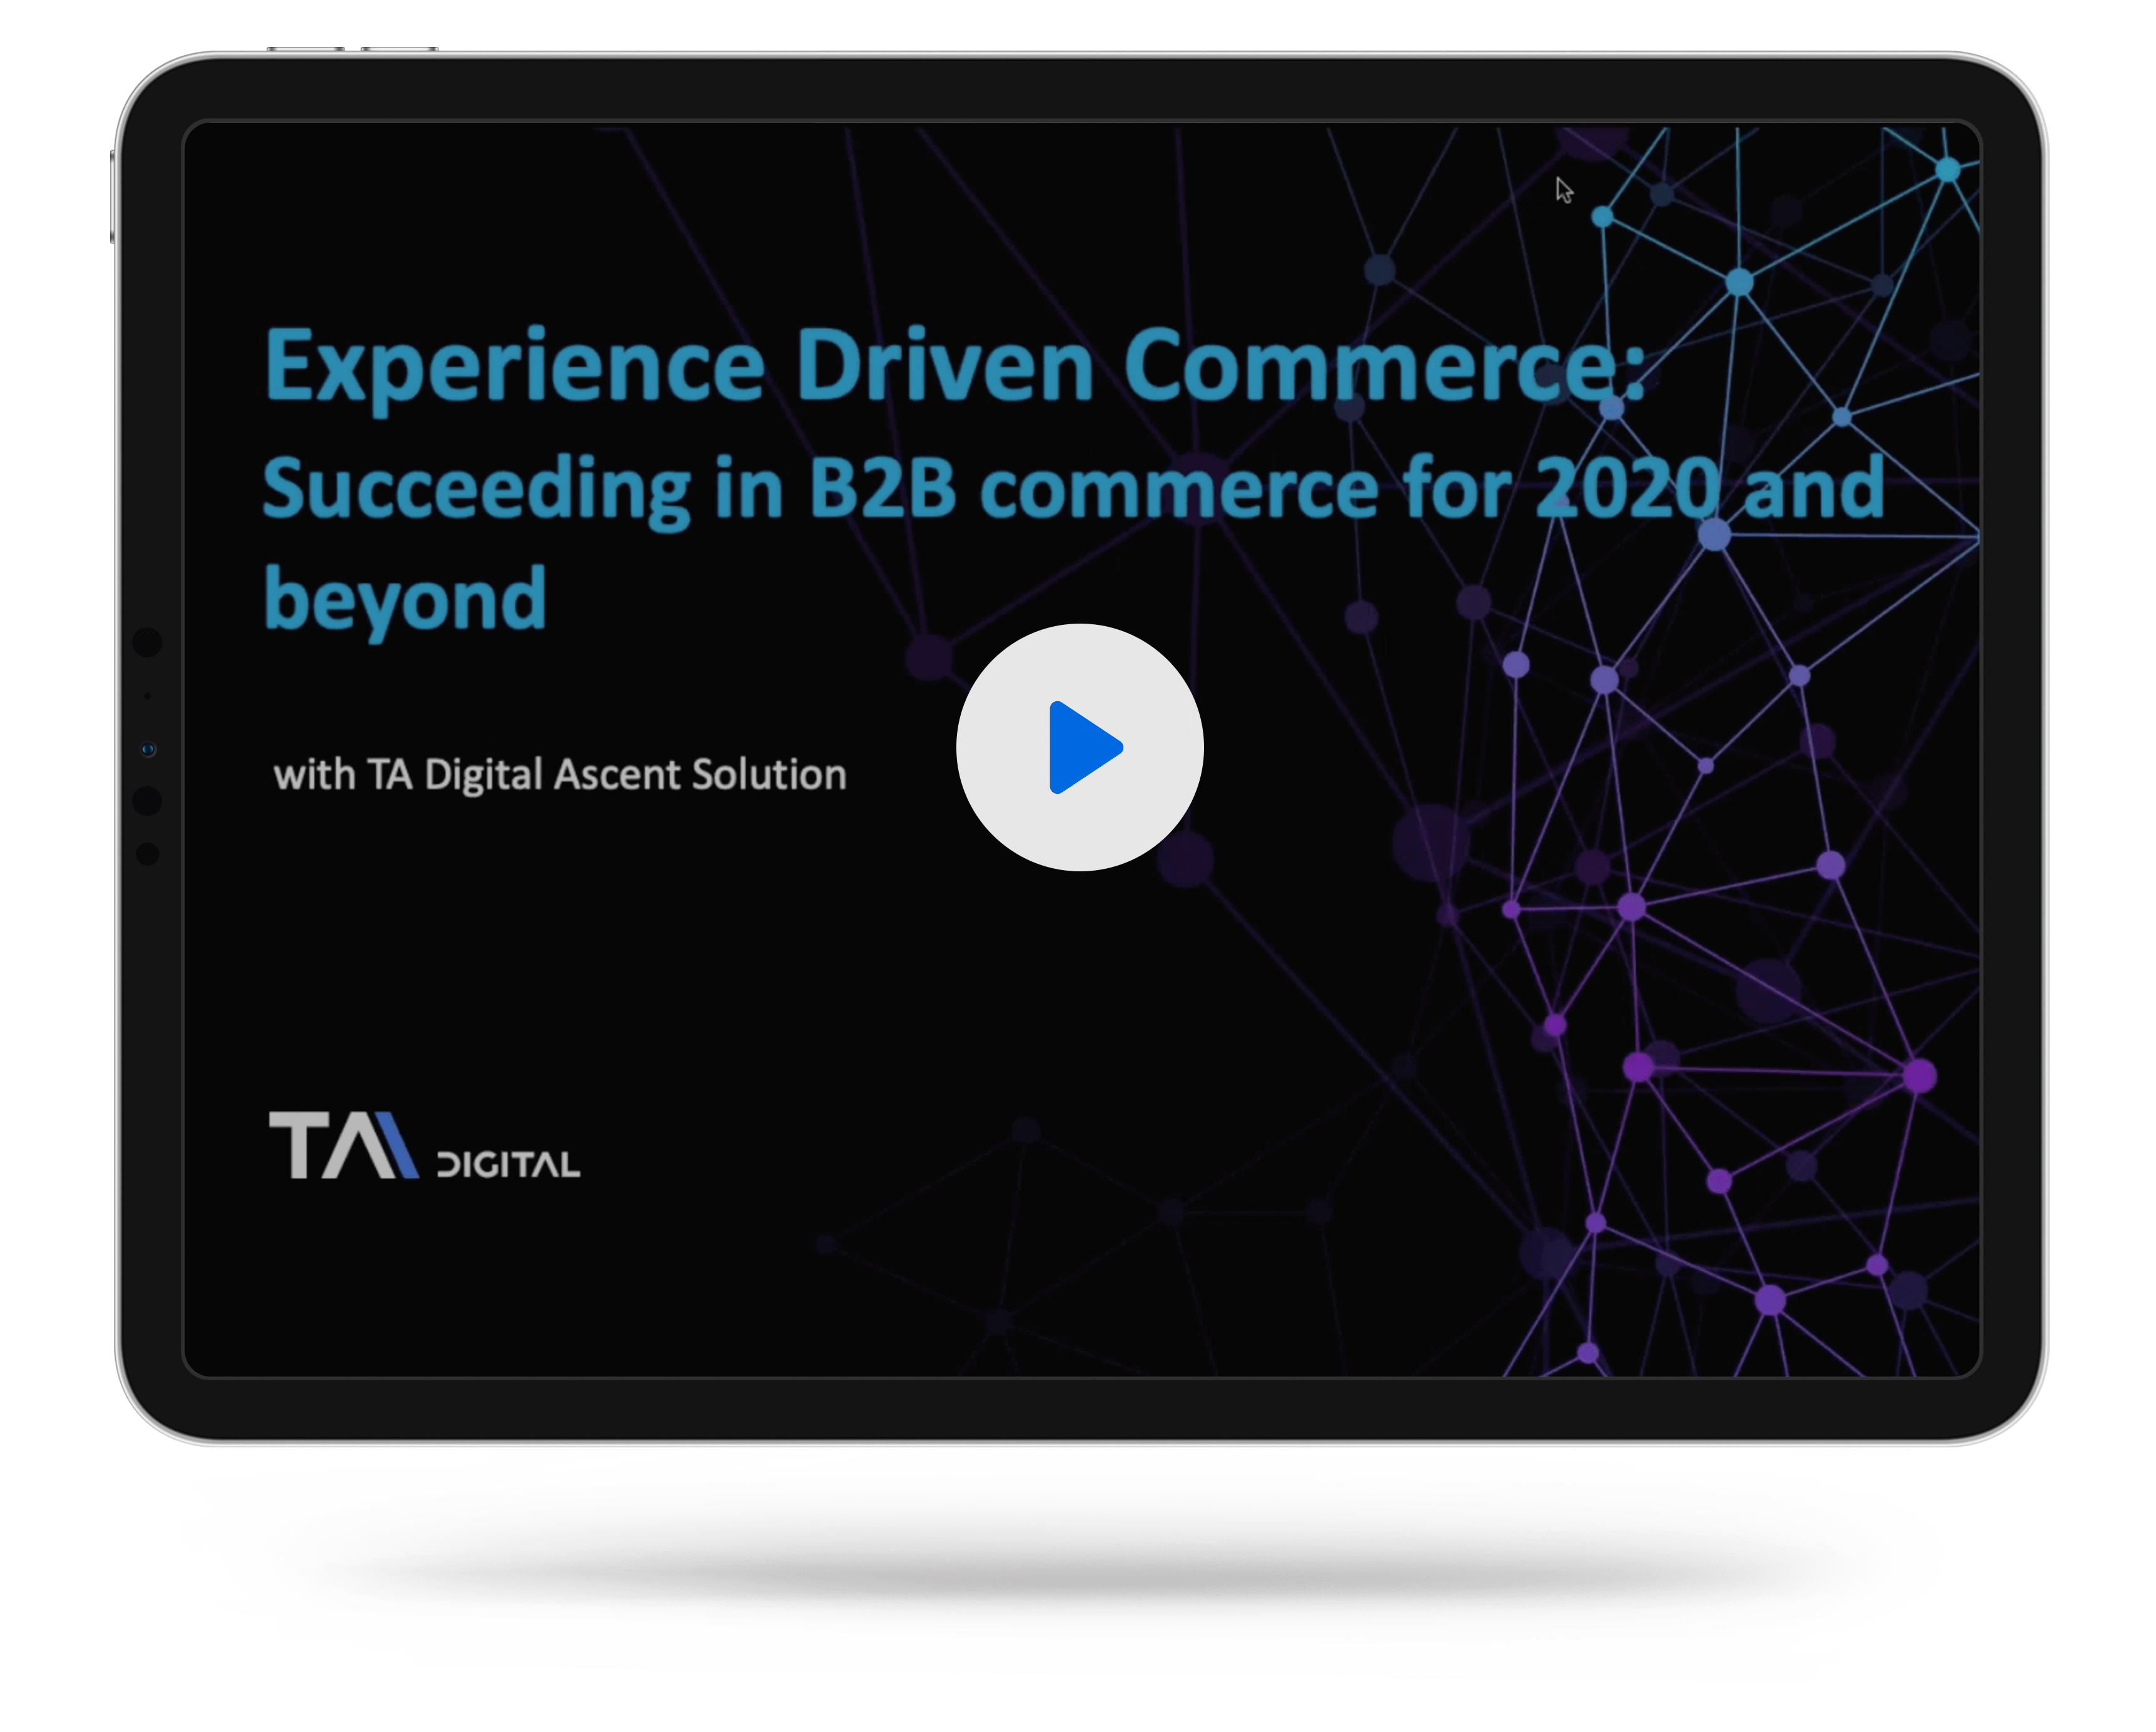 Experience Driven Commerce: Succeeding in B2B commerce for 2020 and beyond